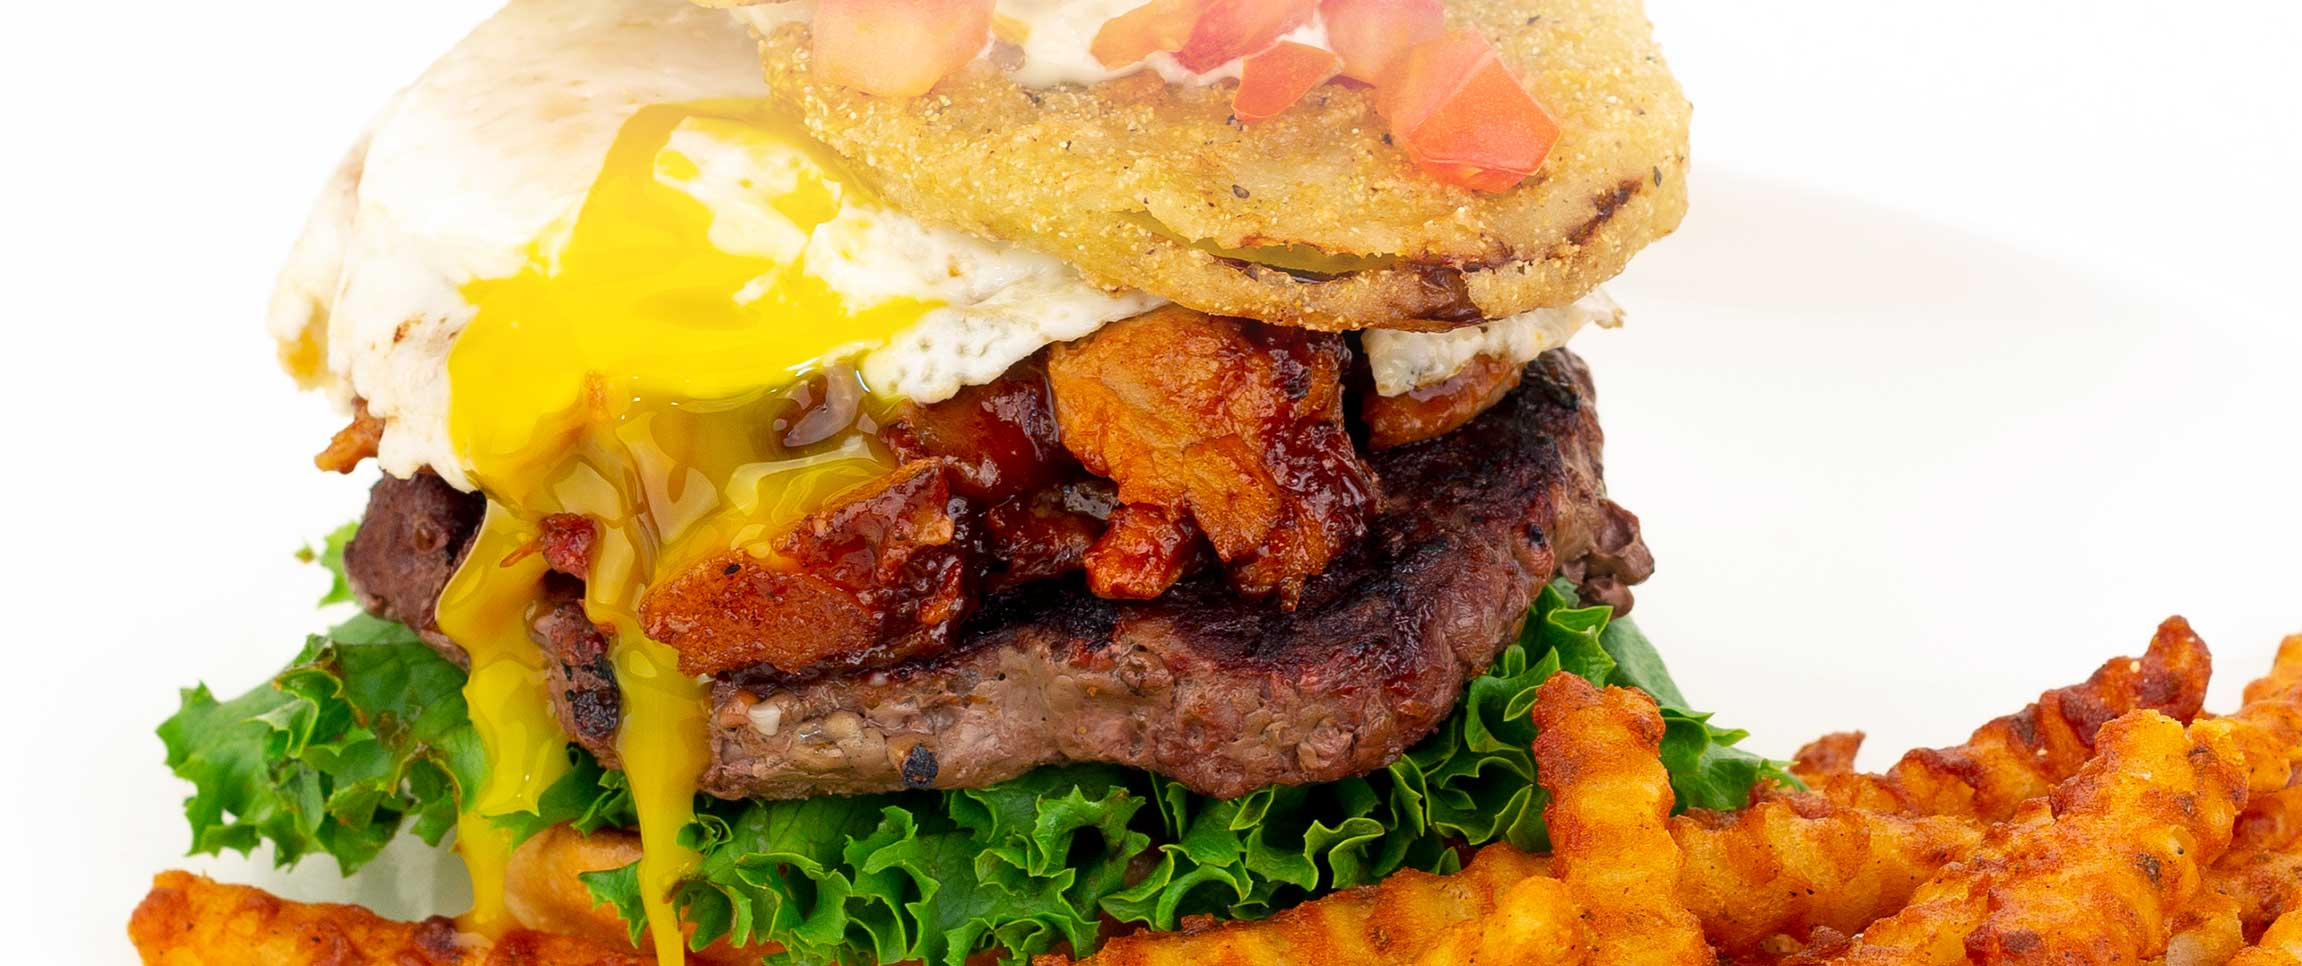 Burger with Egg, Pork, and Green Tomato